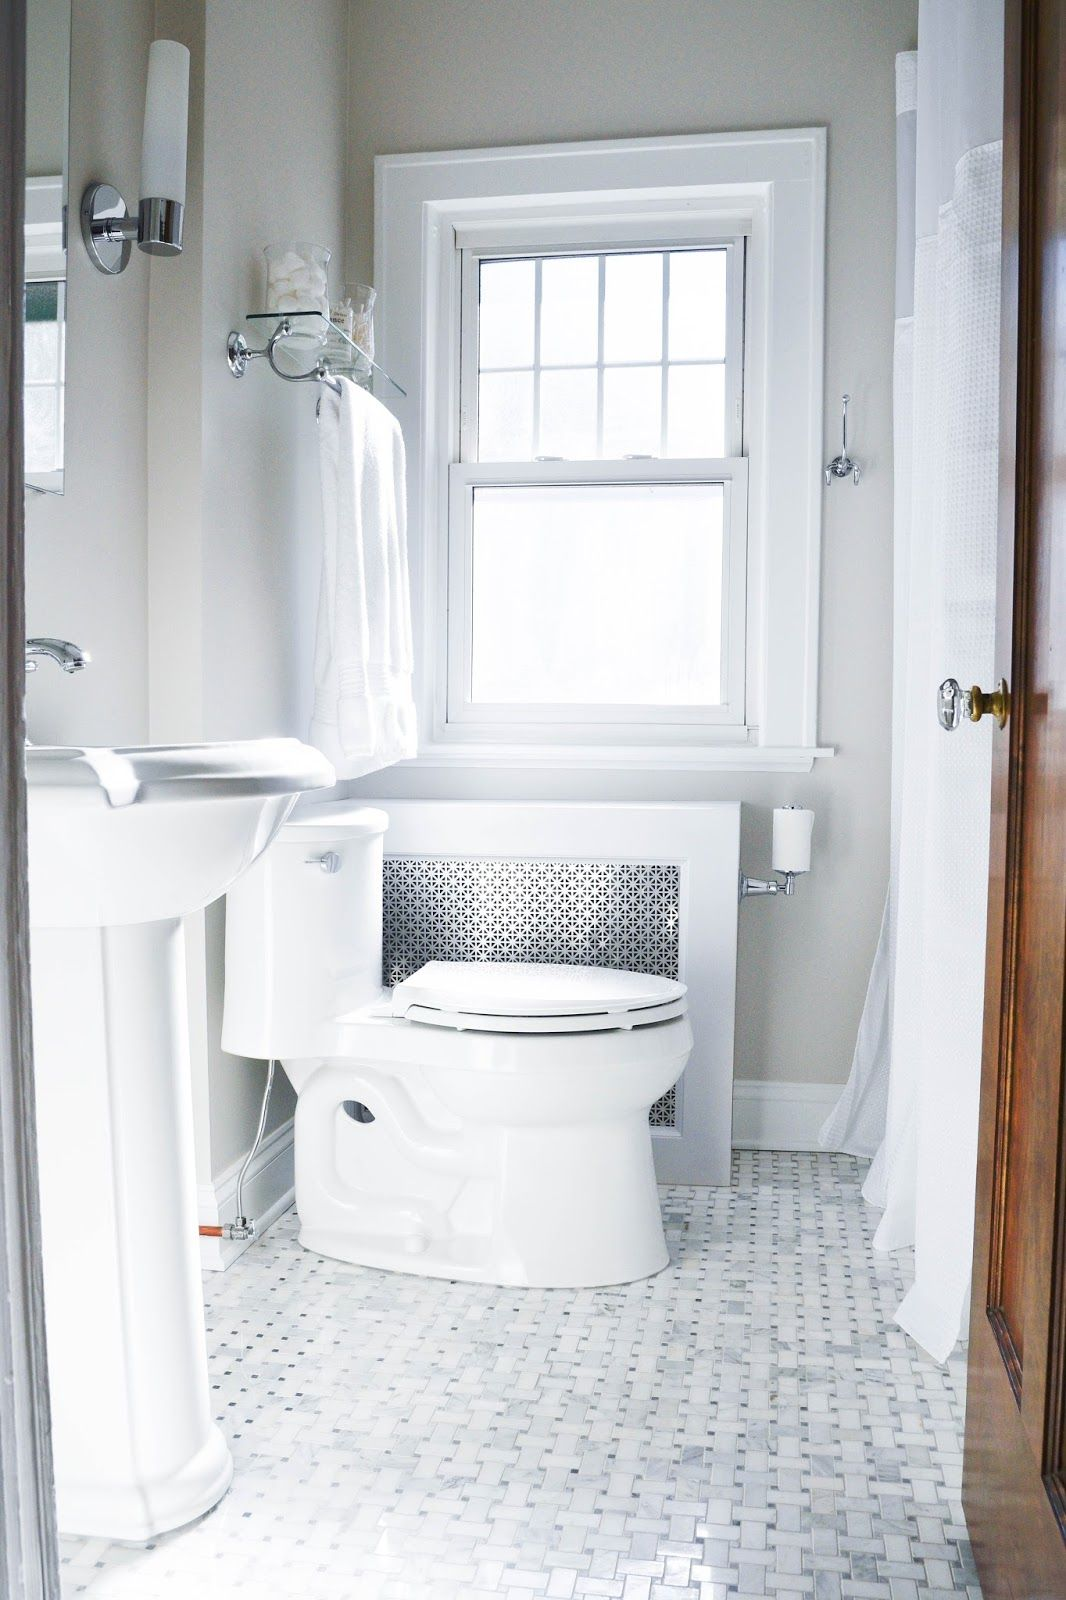 Modern Meets Traditional Styled Bathroom | Traditional, Modern and ...